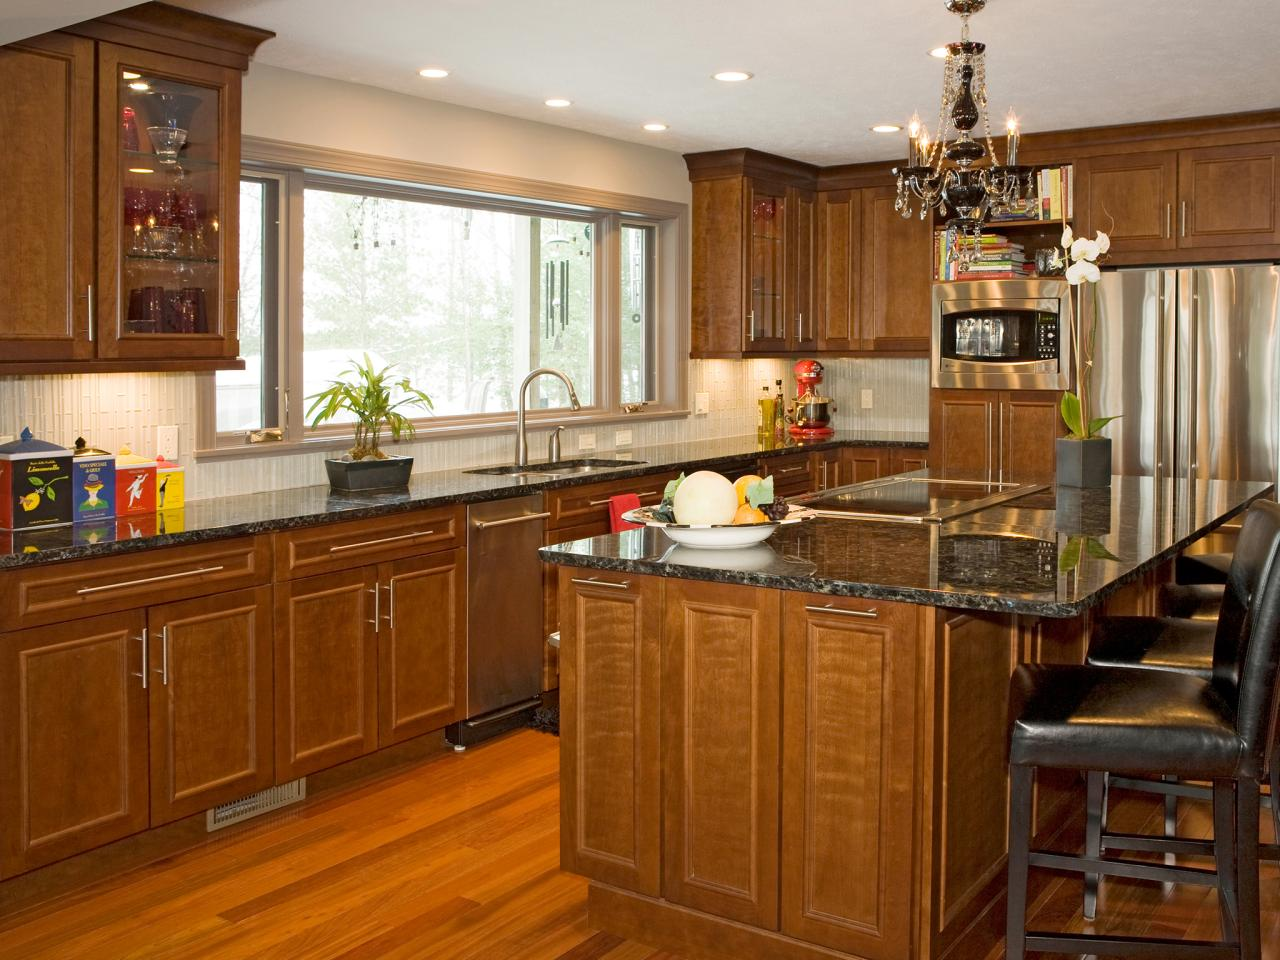 Dark Wood Kitchen Cabinets With Patterned Backsplash